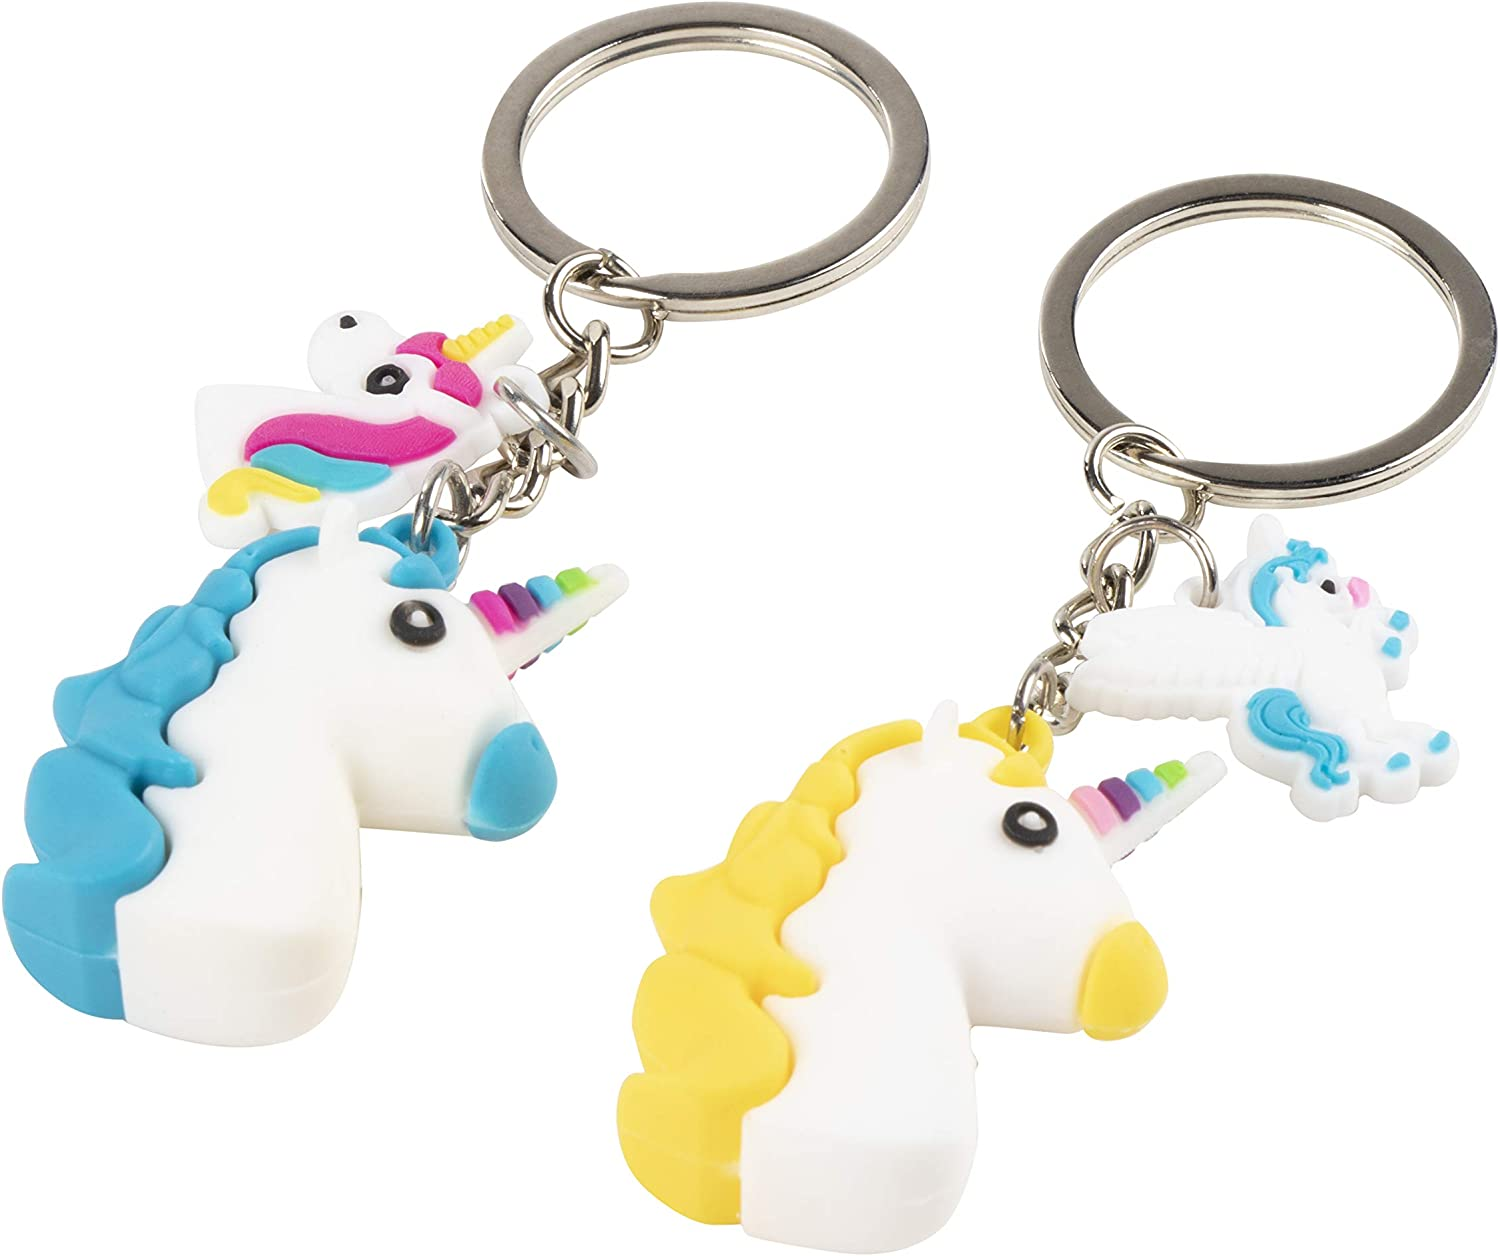 Mini Unicorn Party Supplies for Birthdays Party Goodie Bags 12-Pack Unicorn Party Favors 3 Pieces Each Pinata Stuffers Rainbow Unicorn Keychains 4 Designs 5 x 2 inches Juvale